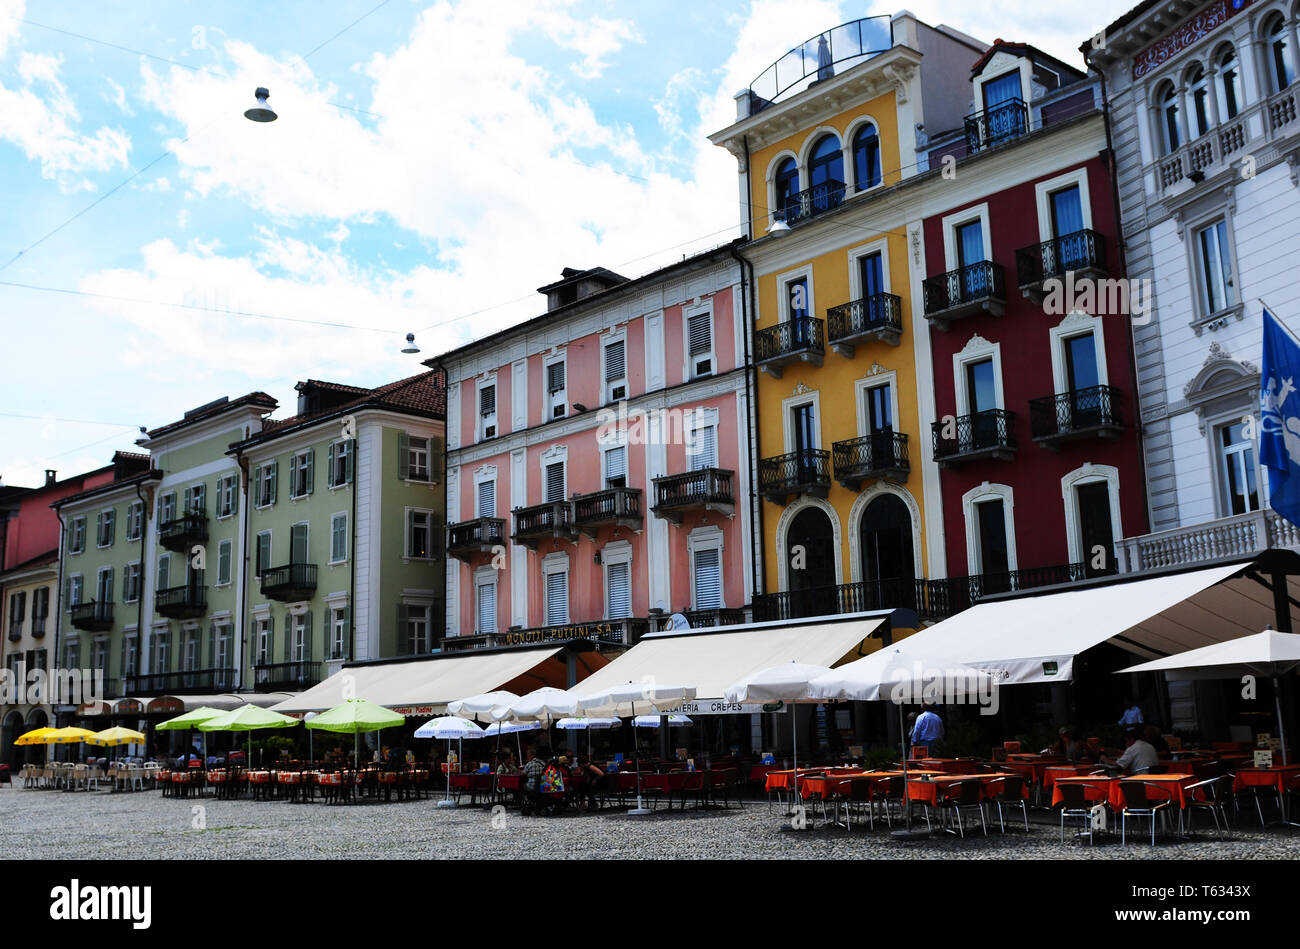 South Switzerland: The Piazza Grande at Locarno where the film-festival takes place - Stock Image